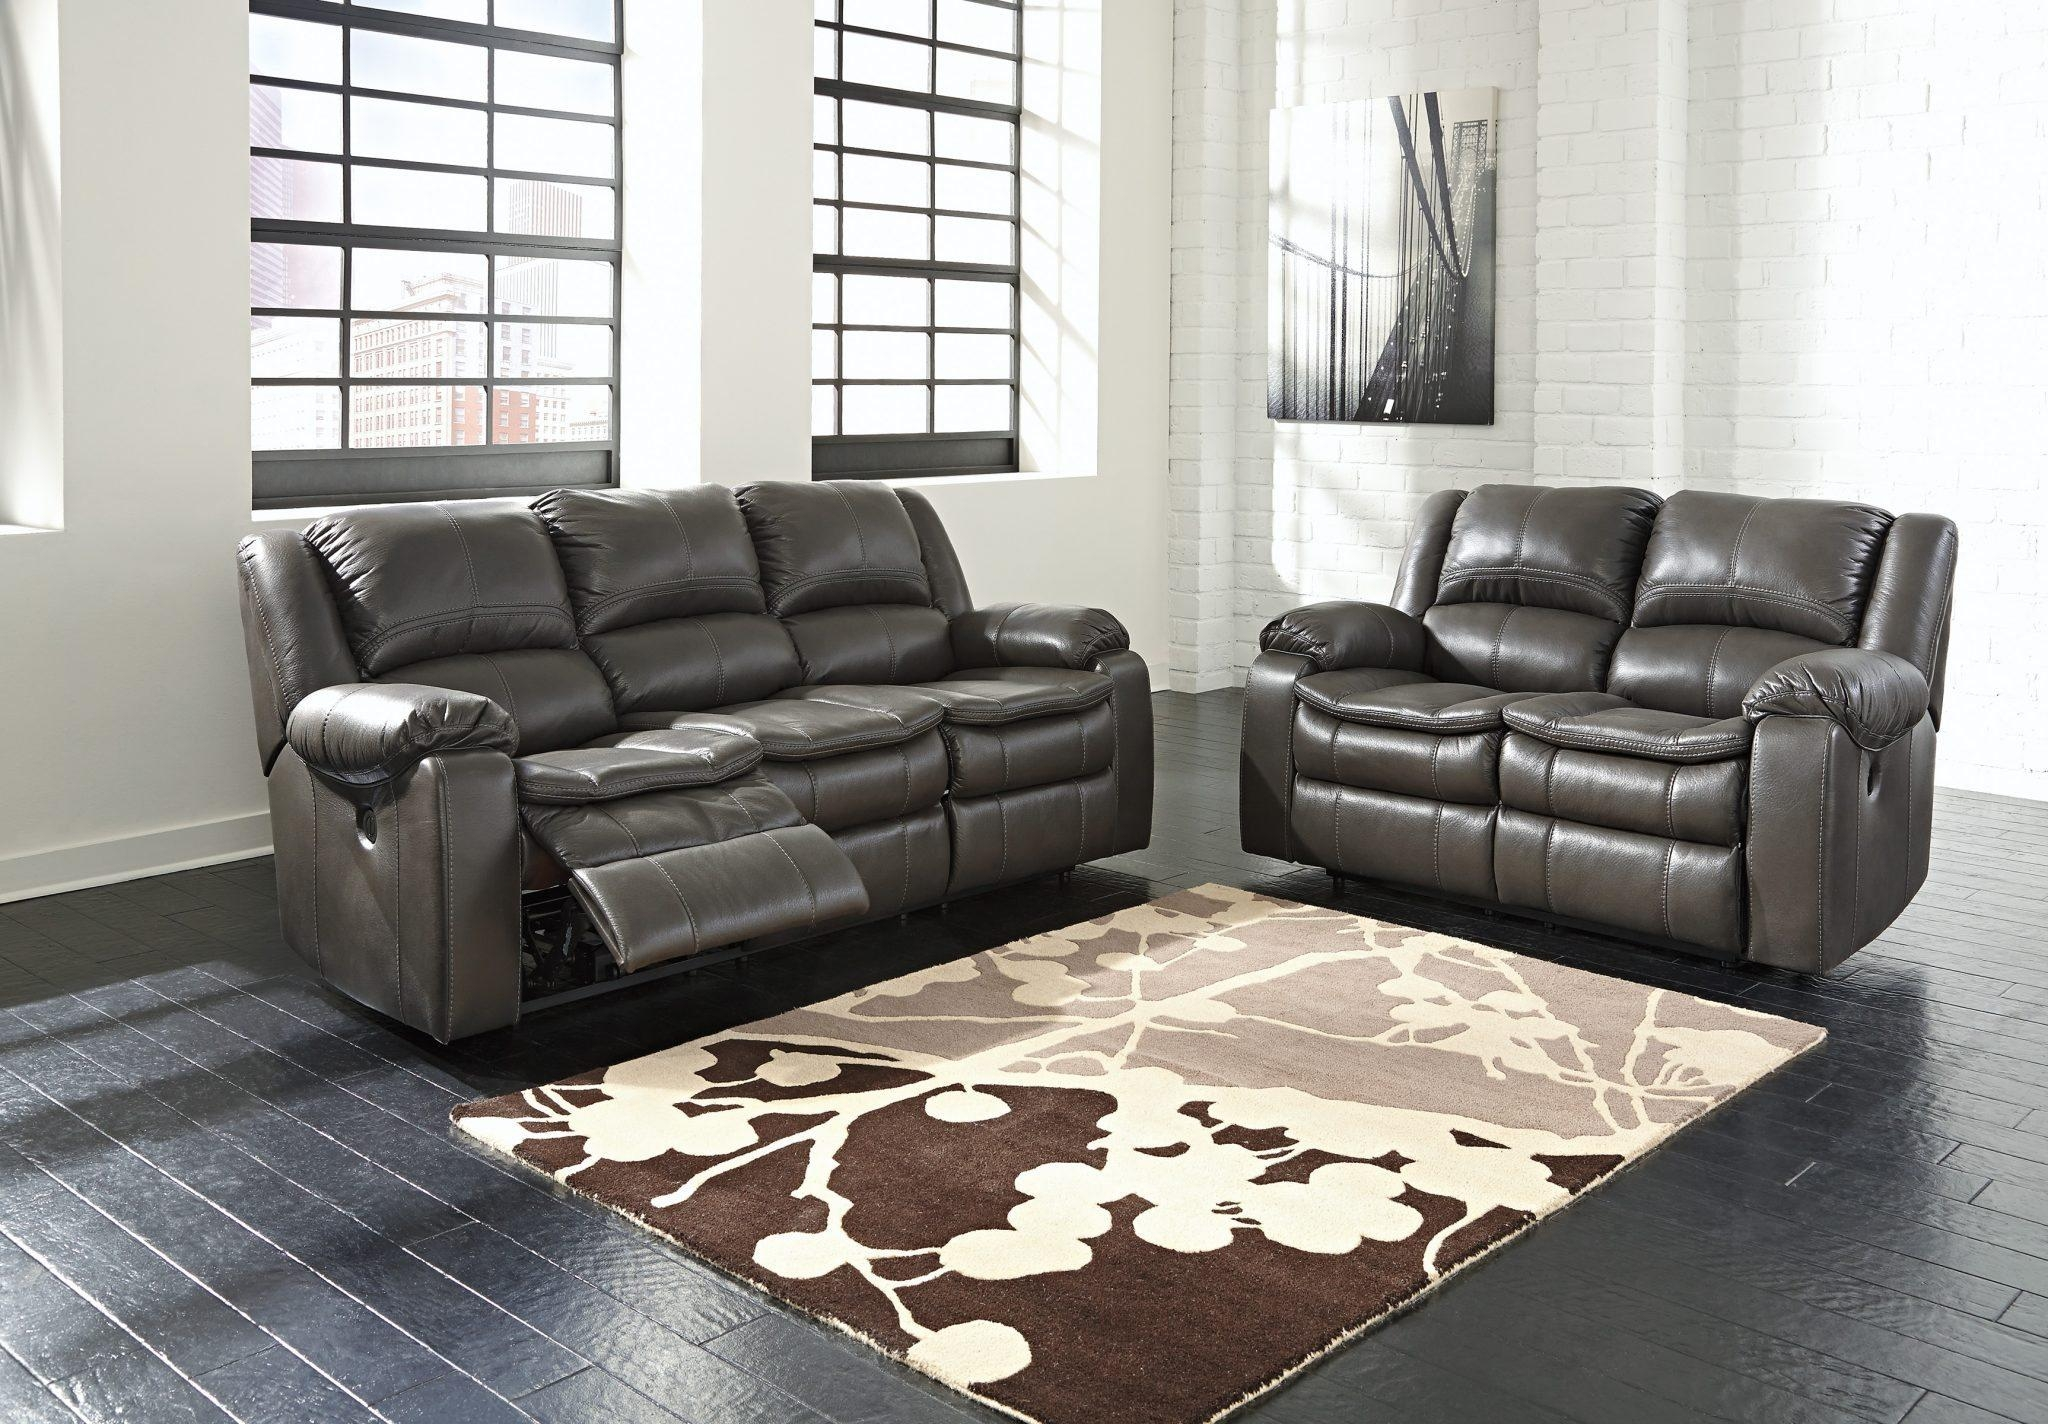 Best Furniture Mentor Oh: Furniture Store – Ashley Furniture With Recliner Sofa Chairs (Image 4 of 20)